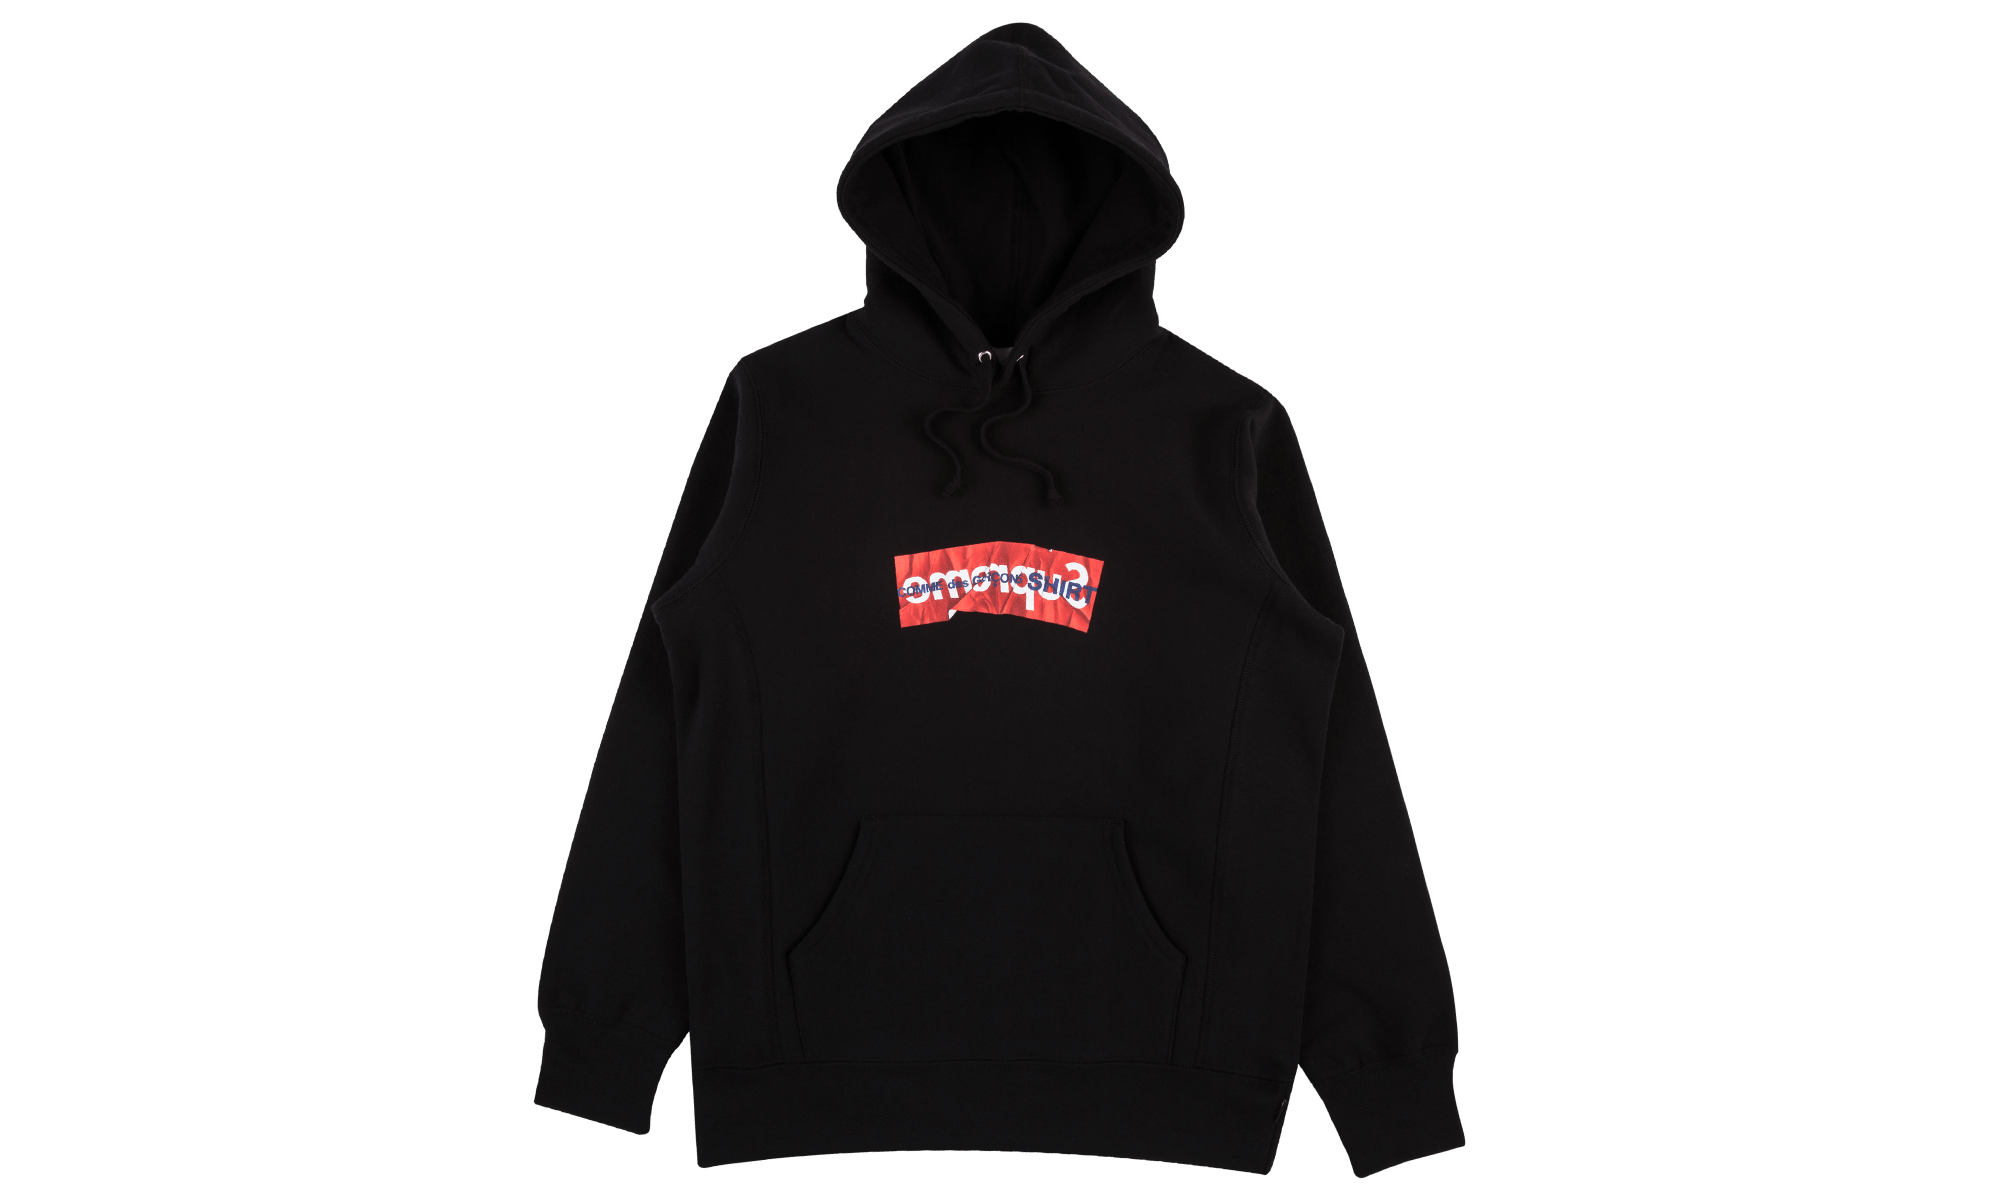 Transparent supreme colorful. Commesdesgarcons hooded sweat jackets